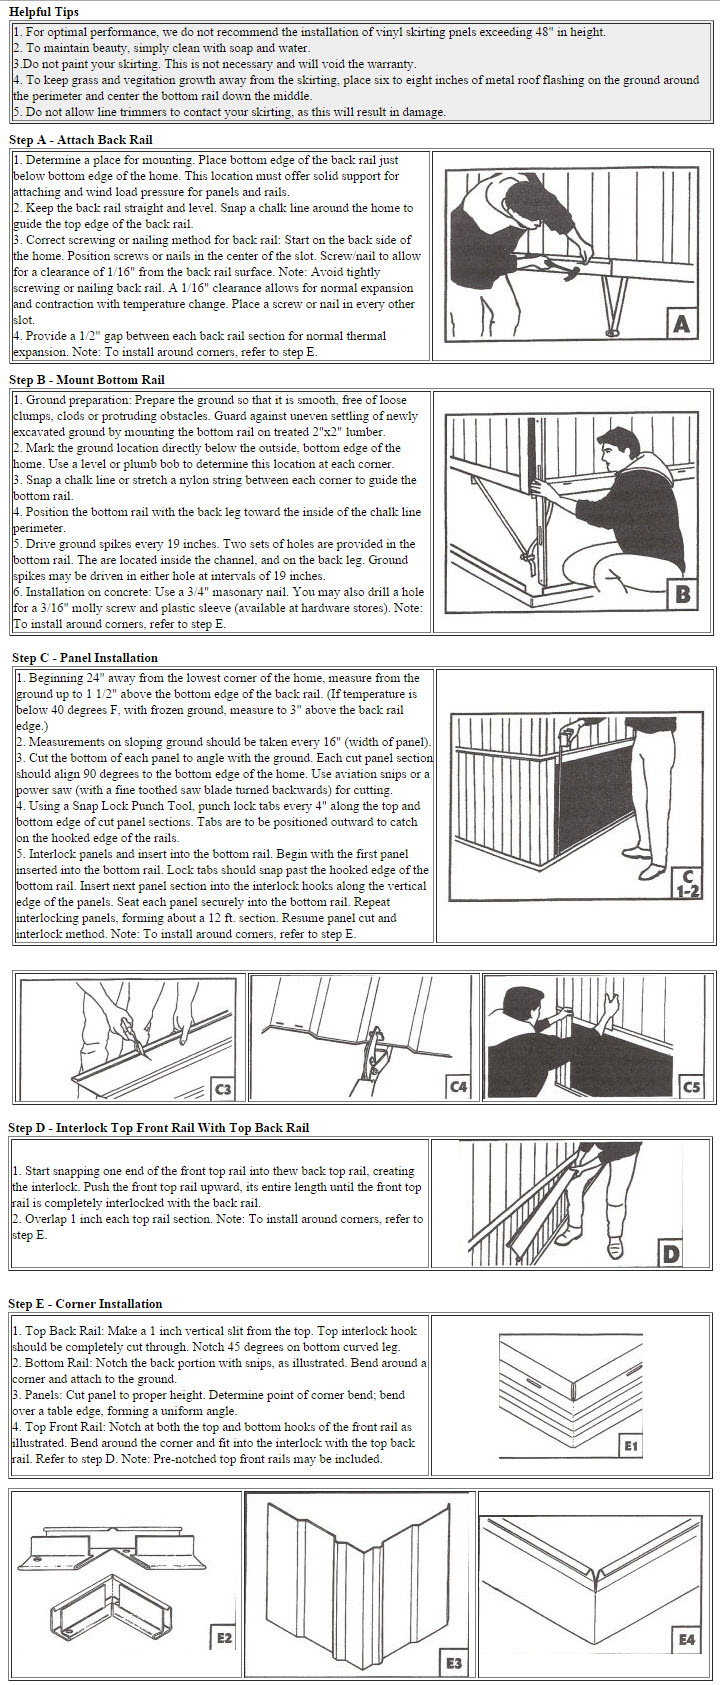 How To Install A Pedestal Sink Orc Week 3 Our Home: A Complete Guide To Mobile Home